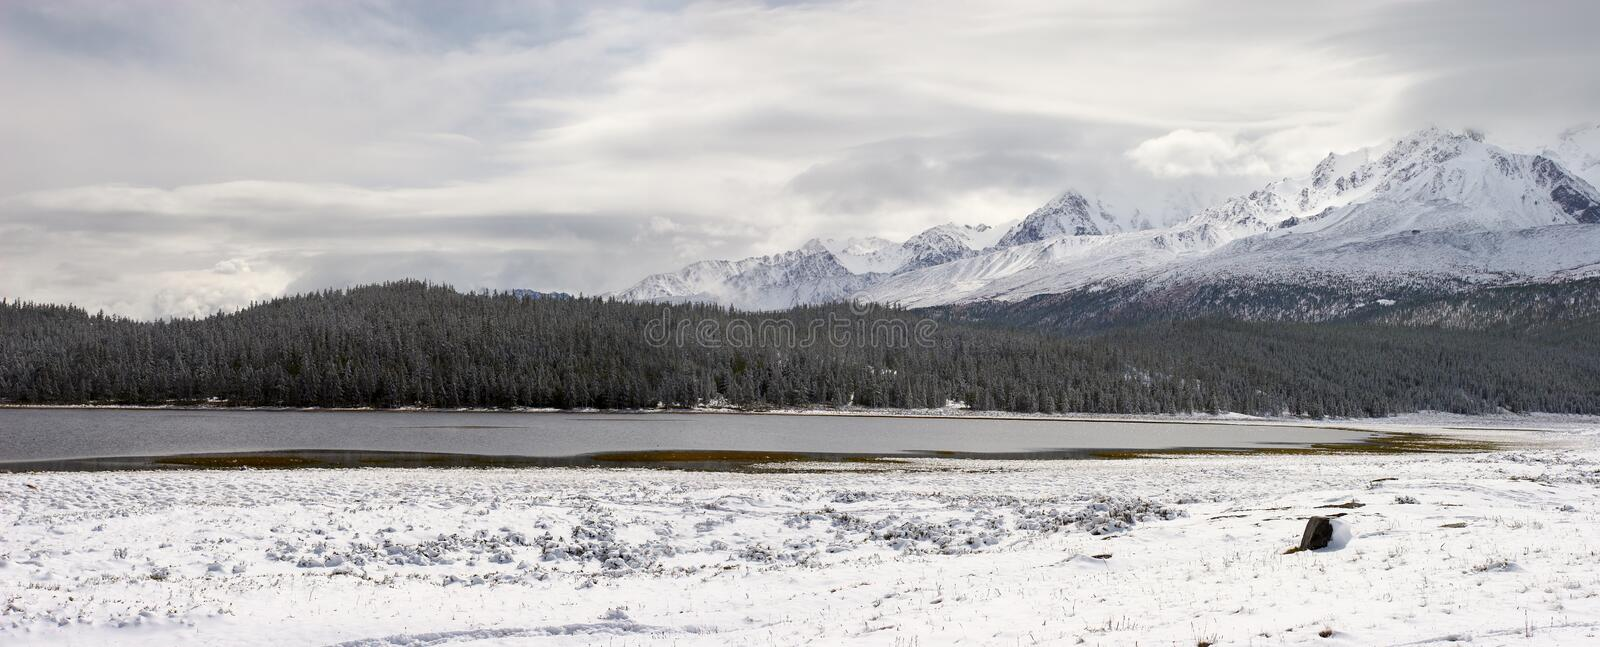 Winter lake and mountains. stock images